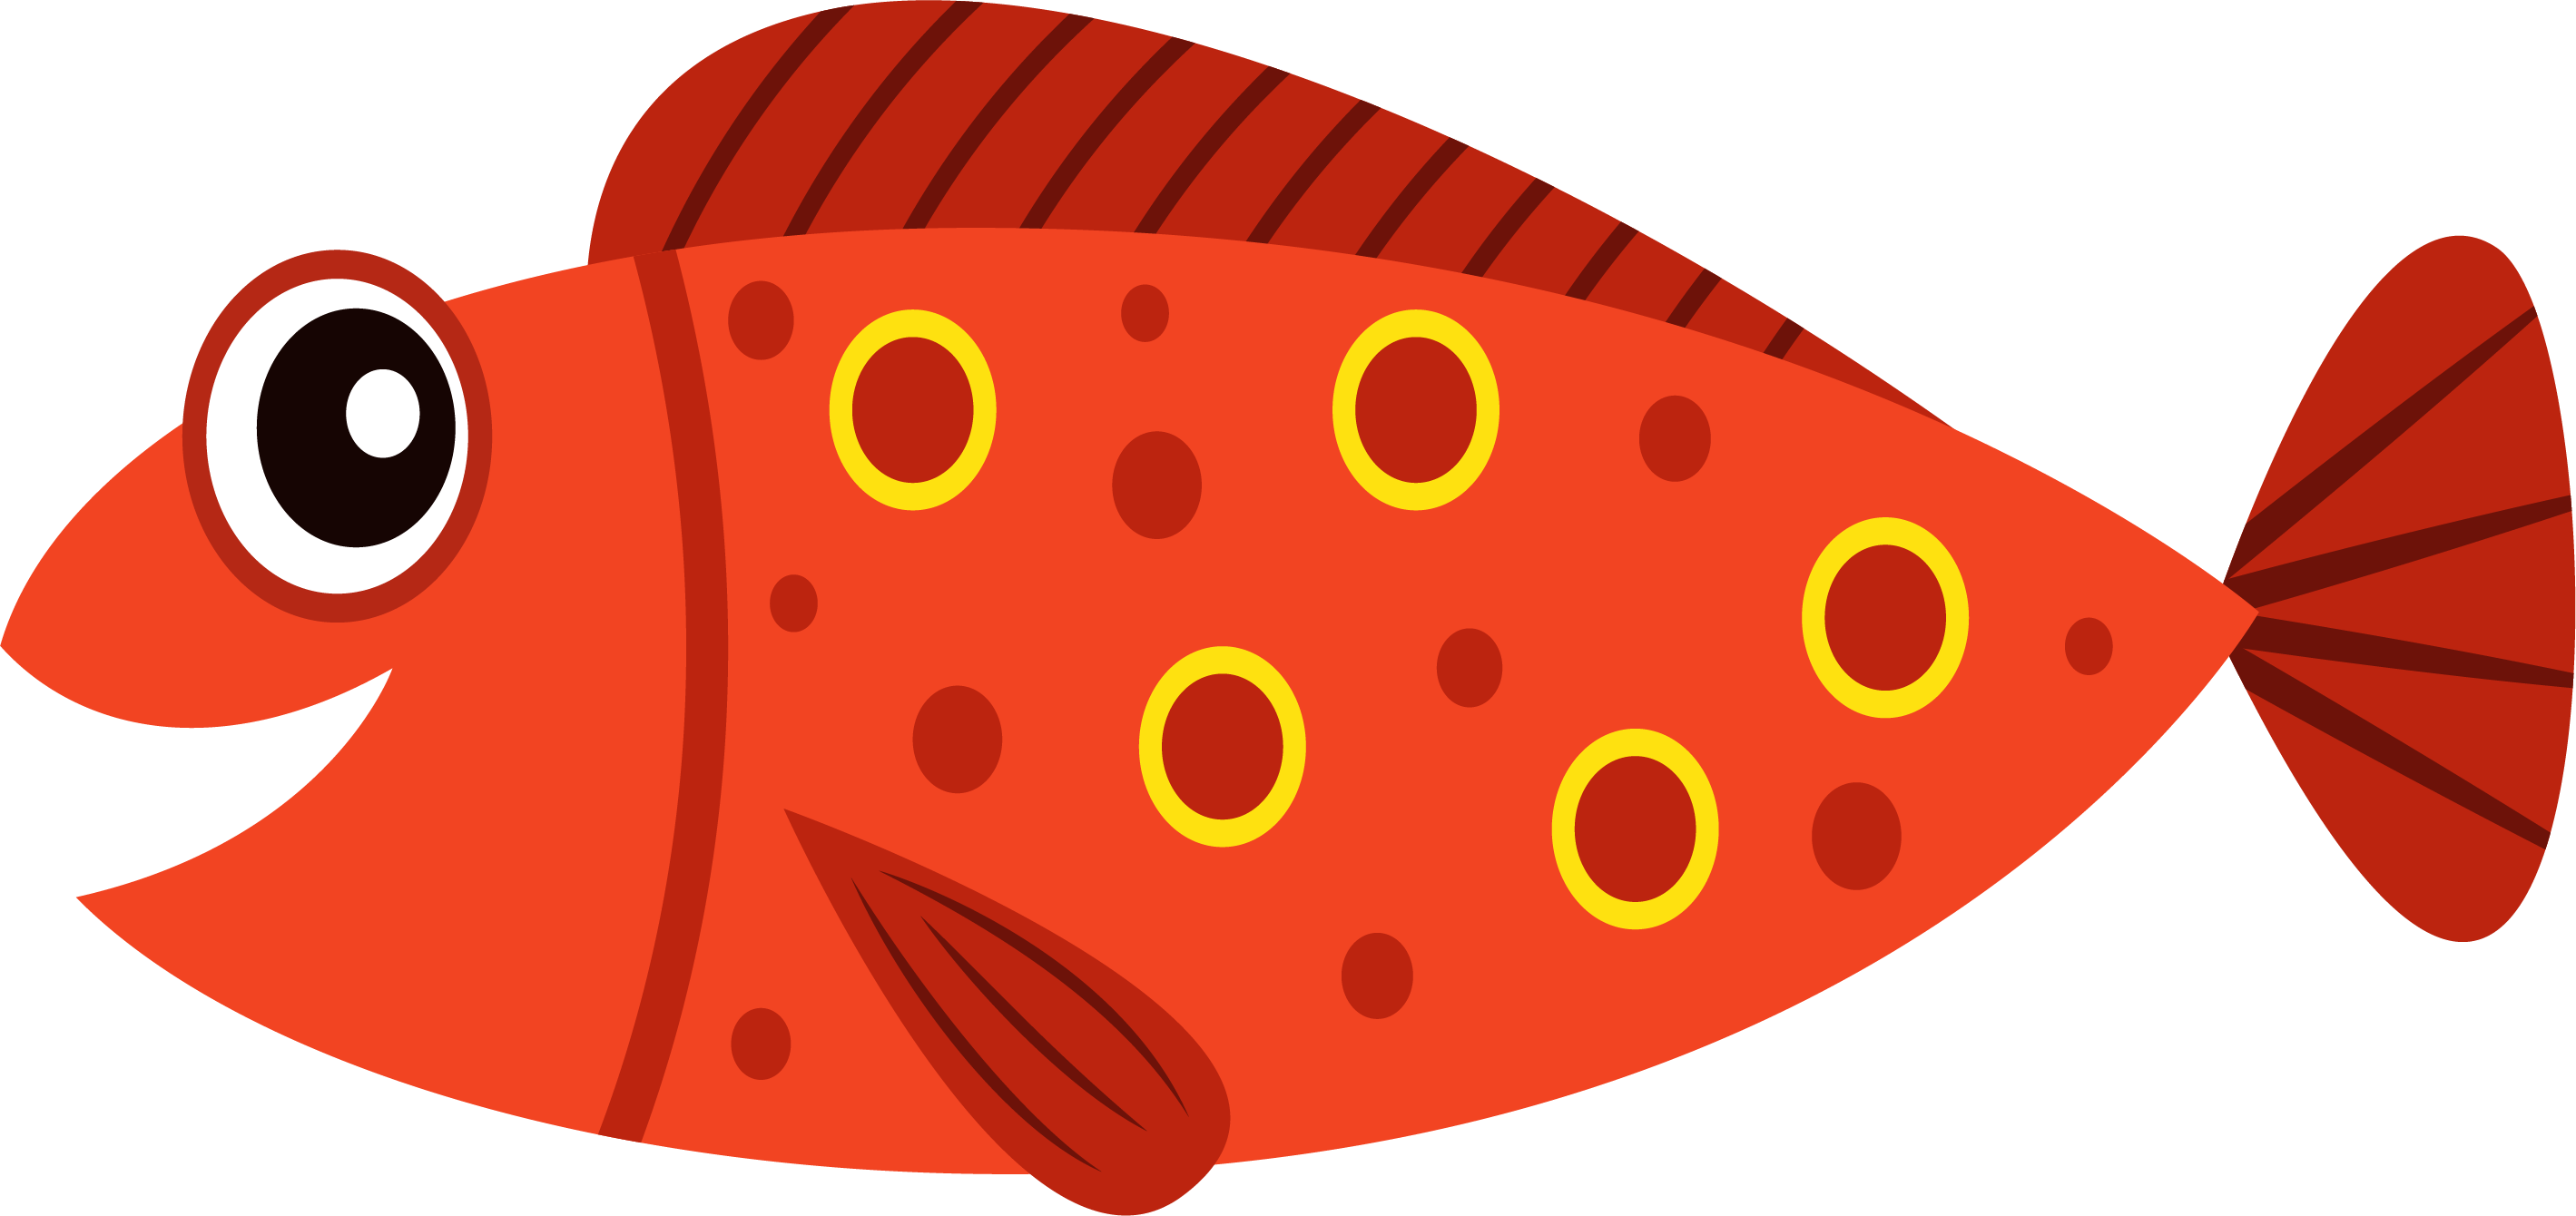 Trigger fish clipart picture free download Fish PNG Images Transparent Pictures | PNG Only picture free download